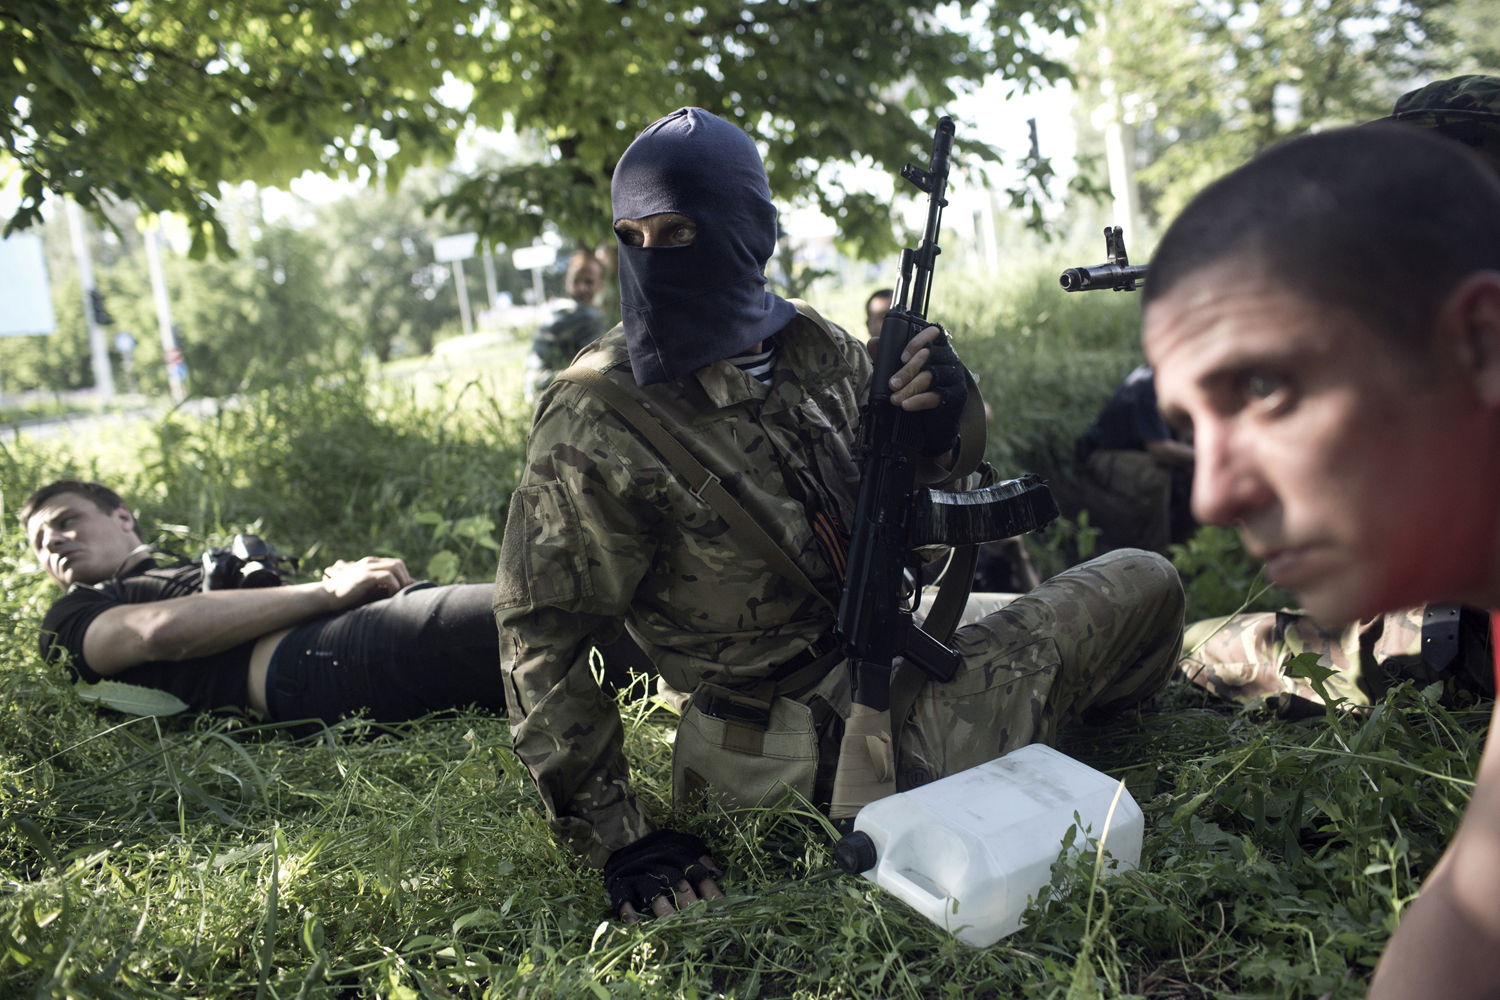 May 24, 2014. Members of various Pro-Russian militia groups battle Ukrainian forces after members of the Donbass People's Republic declared martial law and tried to take over the Donetsk airport.